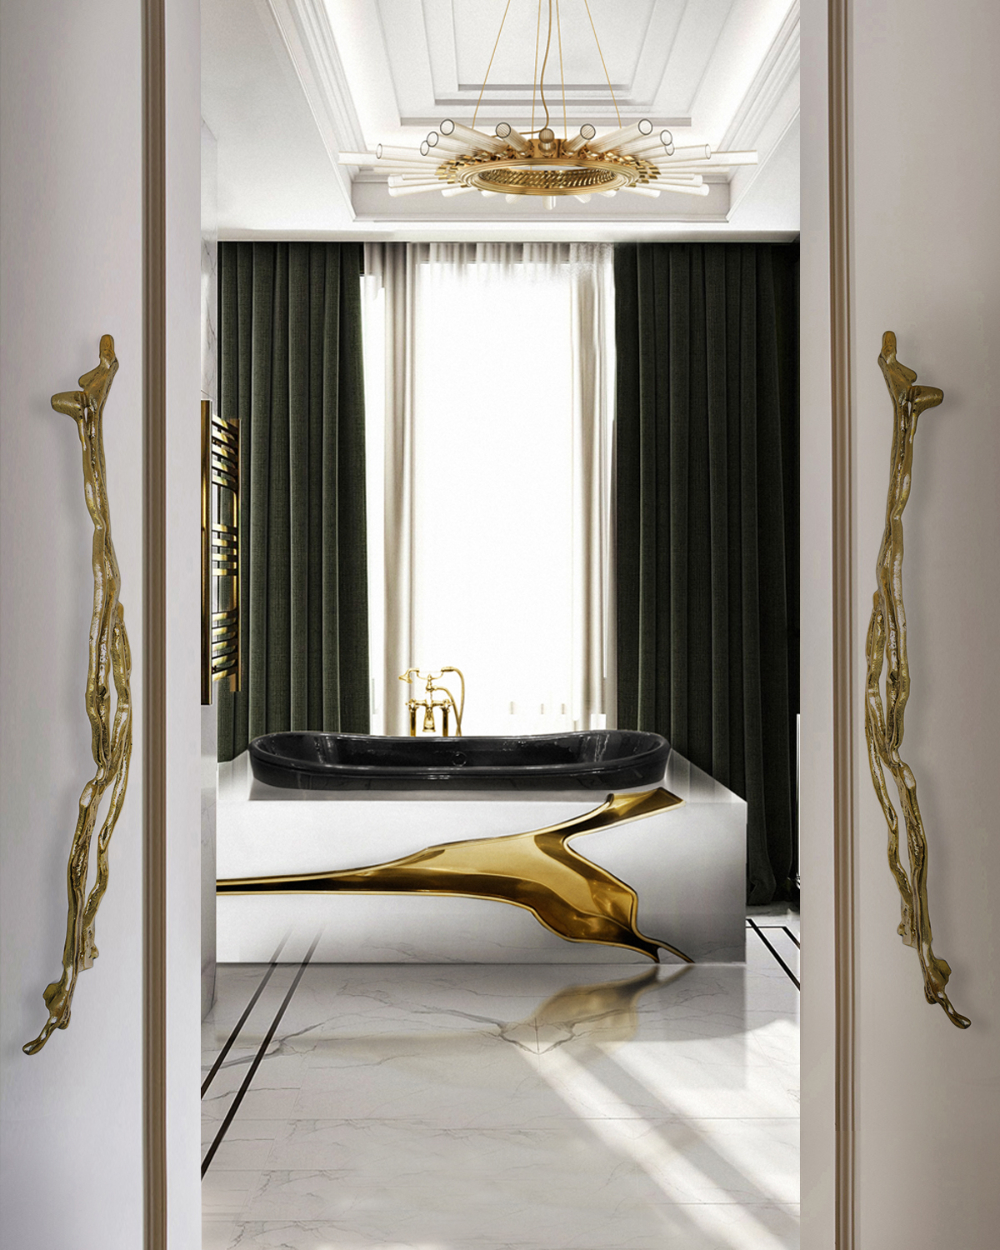 Bathroom Decor Trends 2021 To Watch Out For (3) bathroom decor trends Bathroom Decor Trends 2021 To Watch Out For Bathroom Decor Trends 2021 To Watch Out For 3